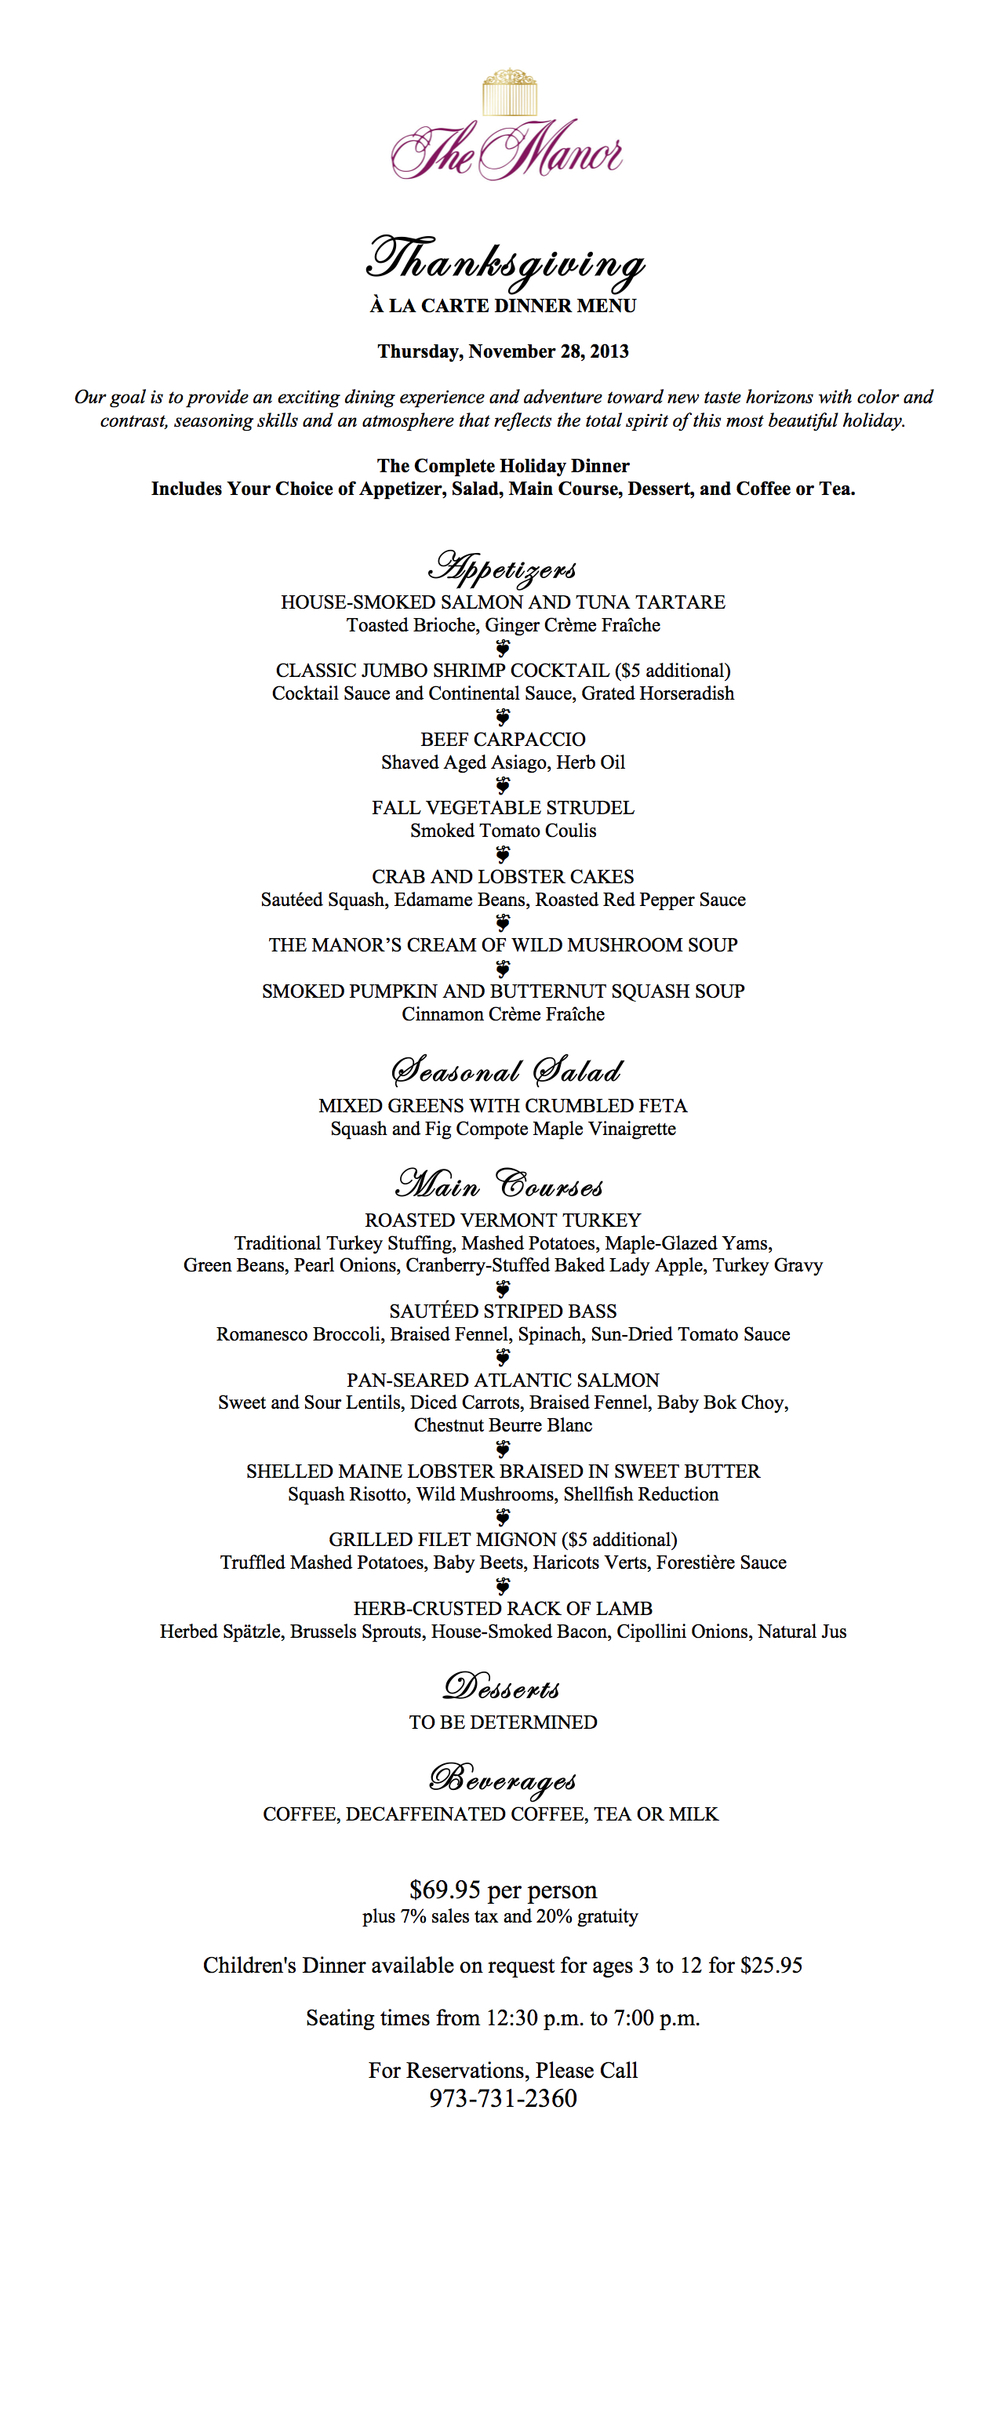 Manor_Thanksgiving_2013_Dinner_Menu copy.jpg